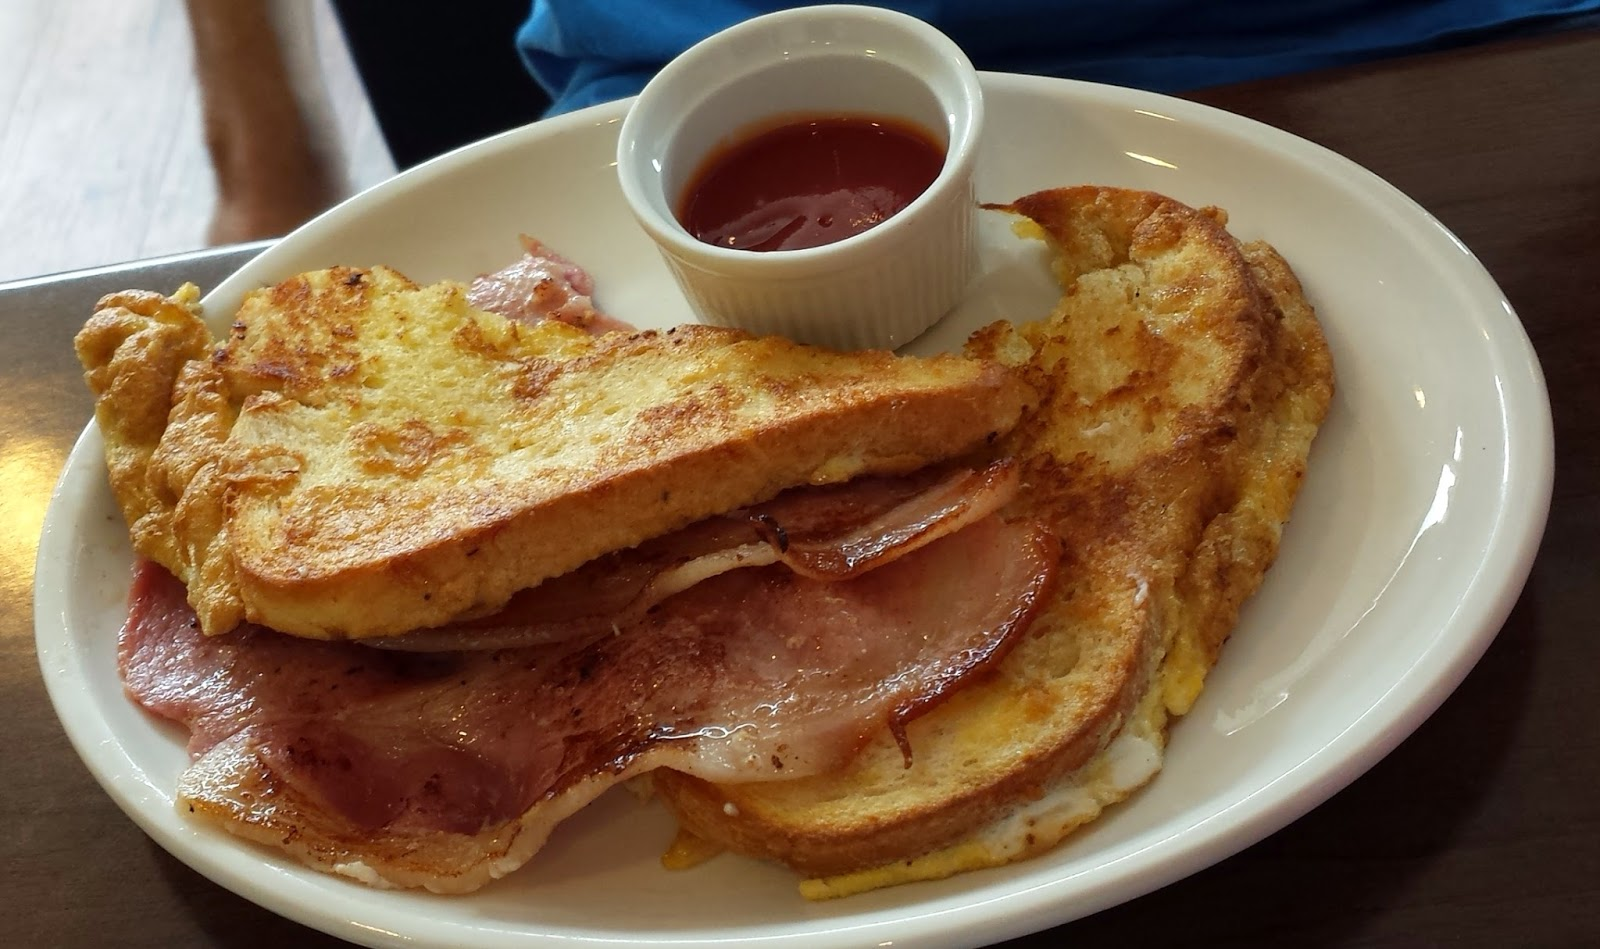 Eggy bread with bacon - Choco Latte, Hillsborough